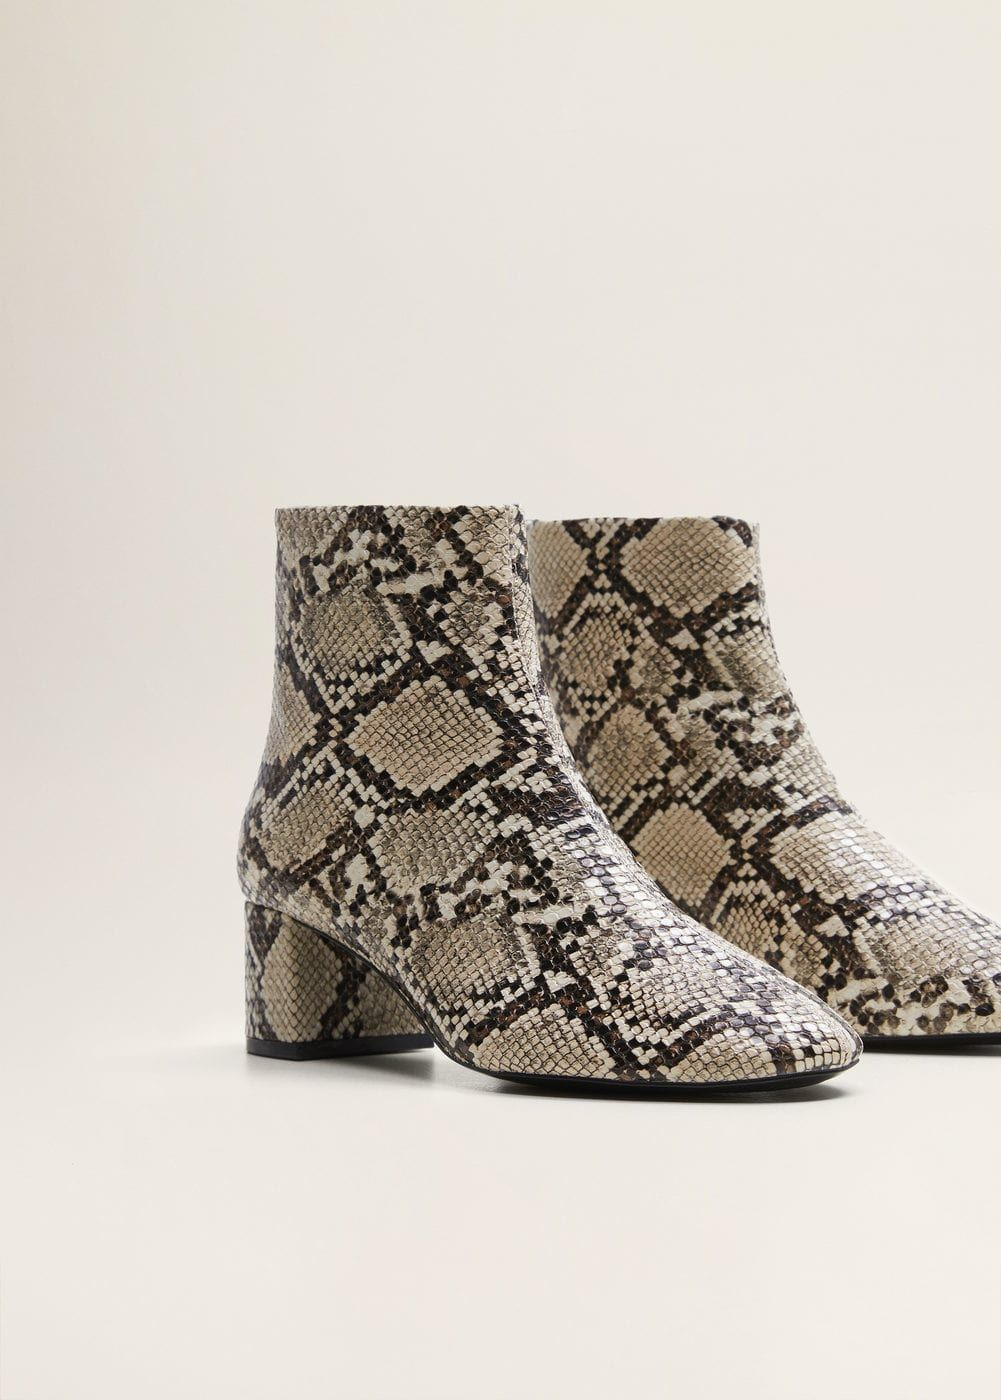 Tricoloured Snakeskin Effect Cowboy Boots in Nude by